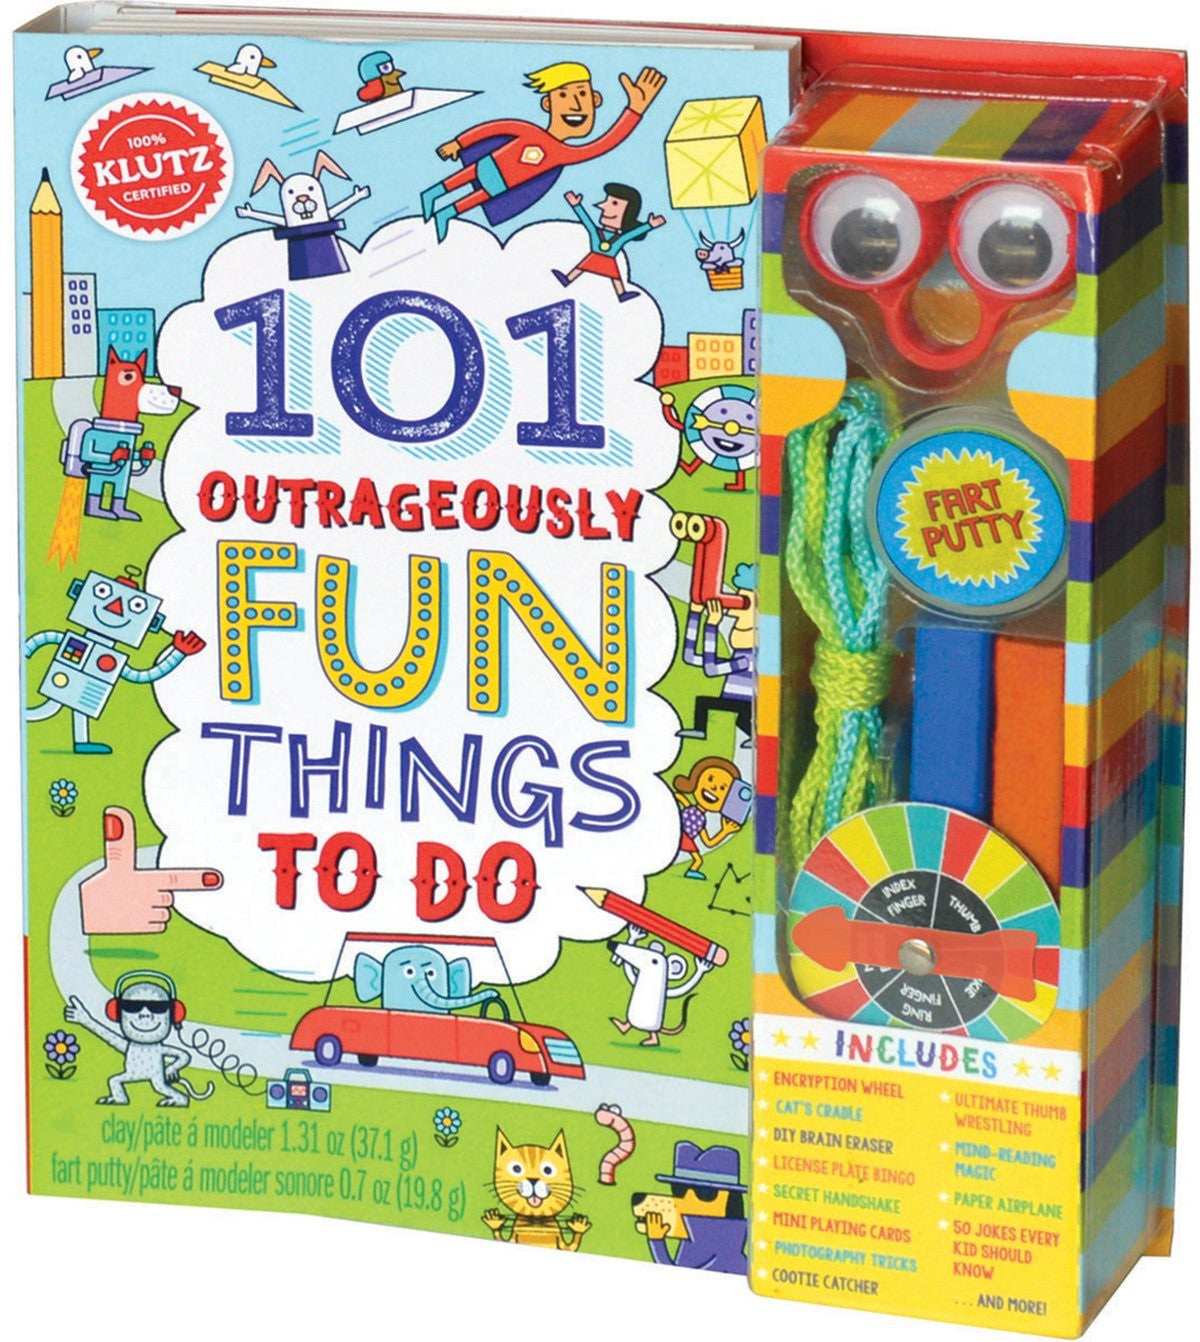 101 Outrageously Fun Things To Do Activity Book, by Klutz - Off The Wall Toys and Gifts